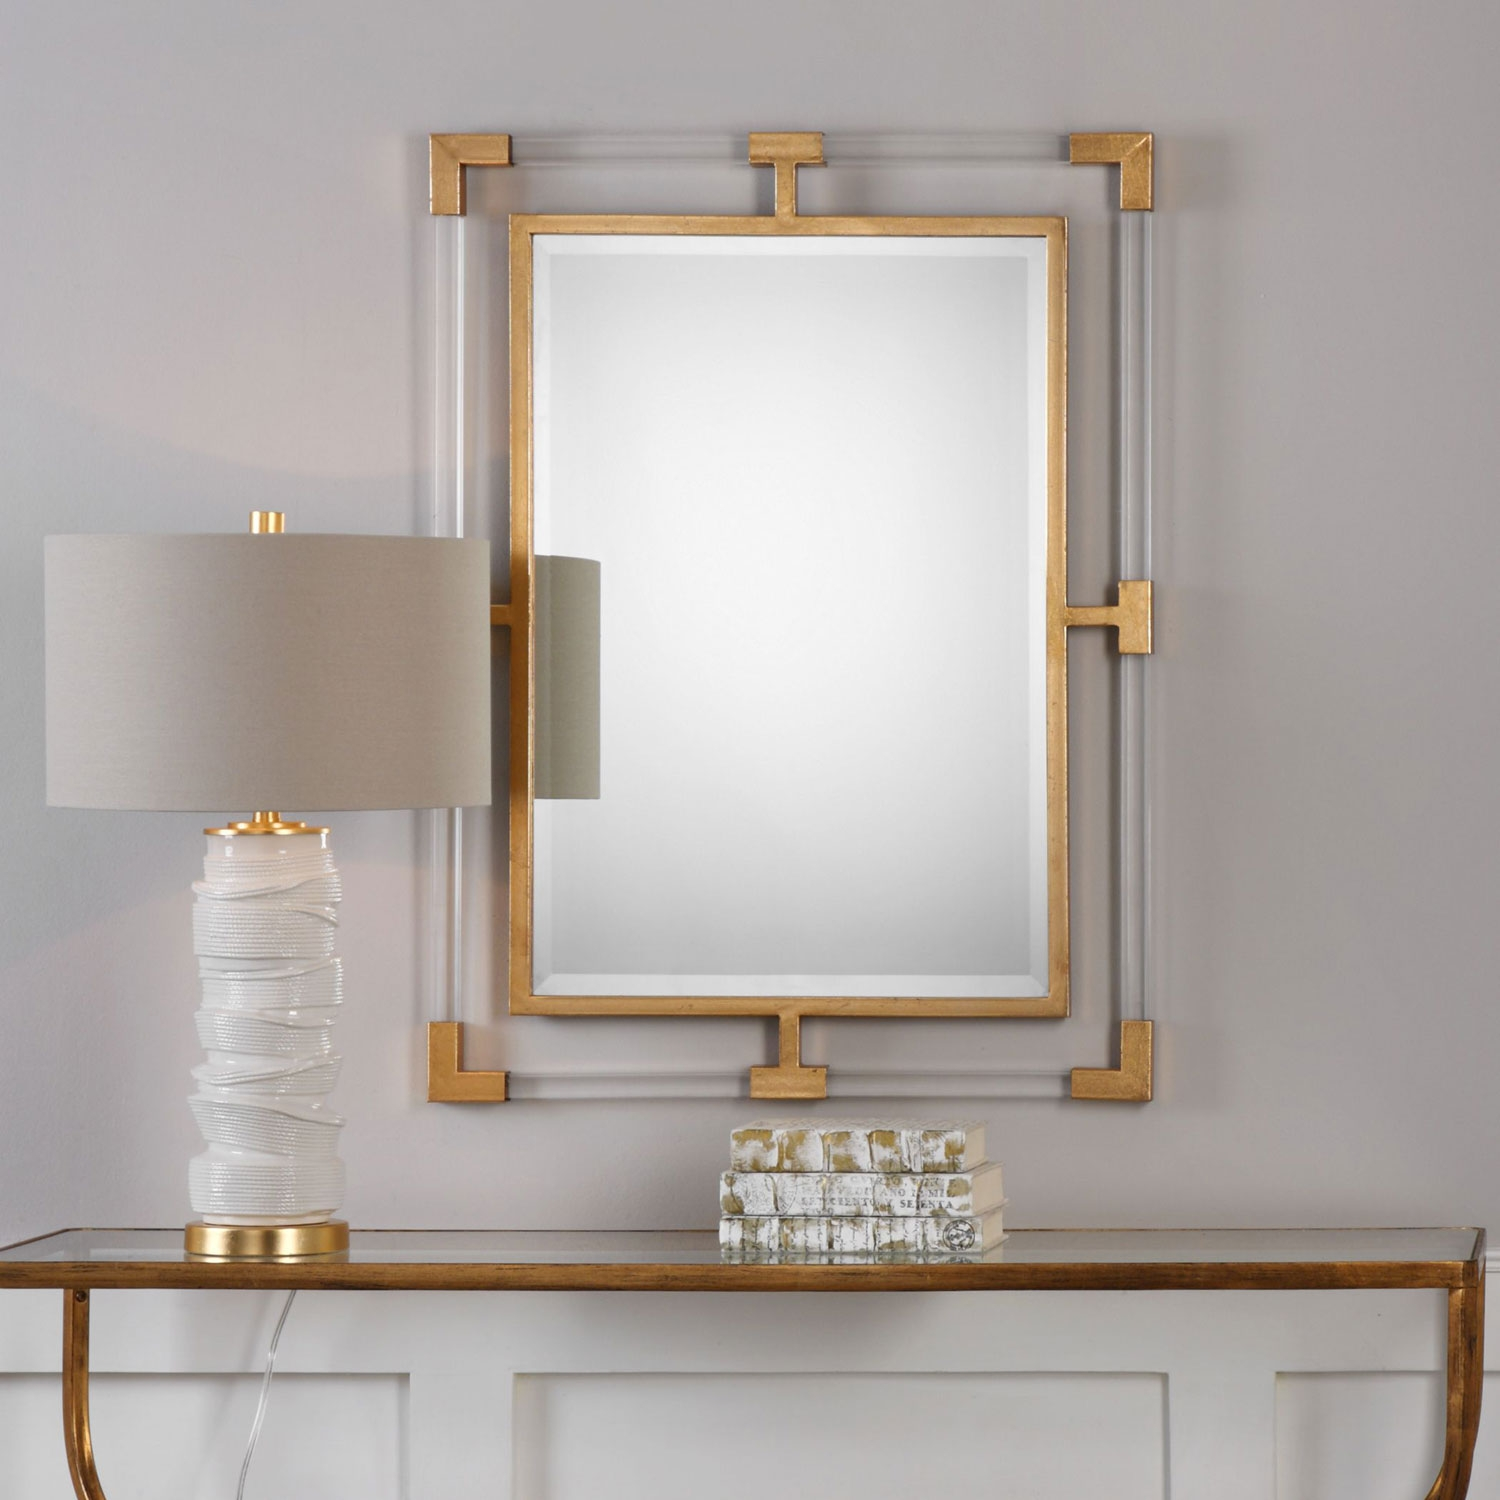 Balkan Modern Gold Wall Mirror Uttermost Rectangle Mirrors Home Decor Within Modern Gold Mirror (Image 3 of 15)